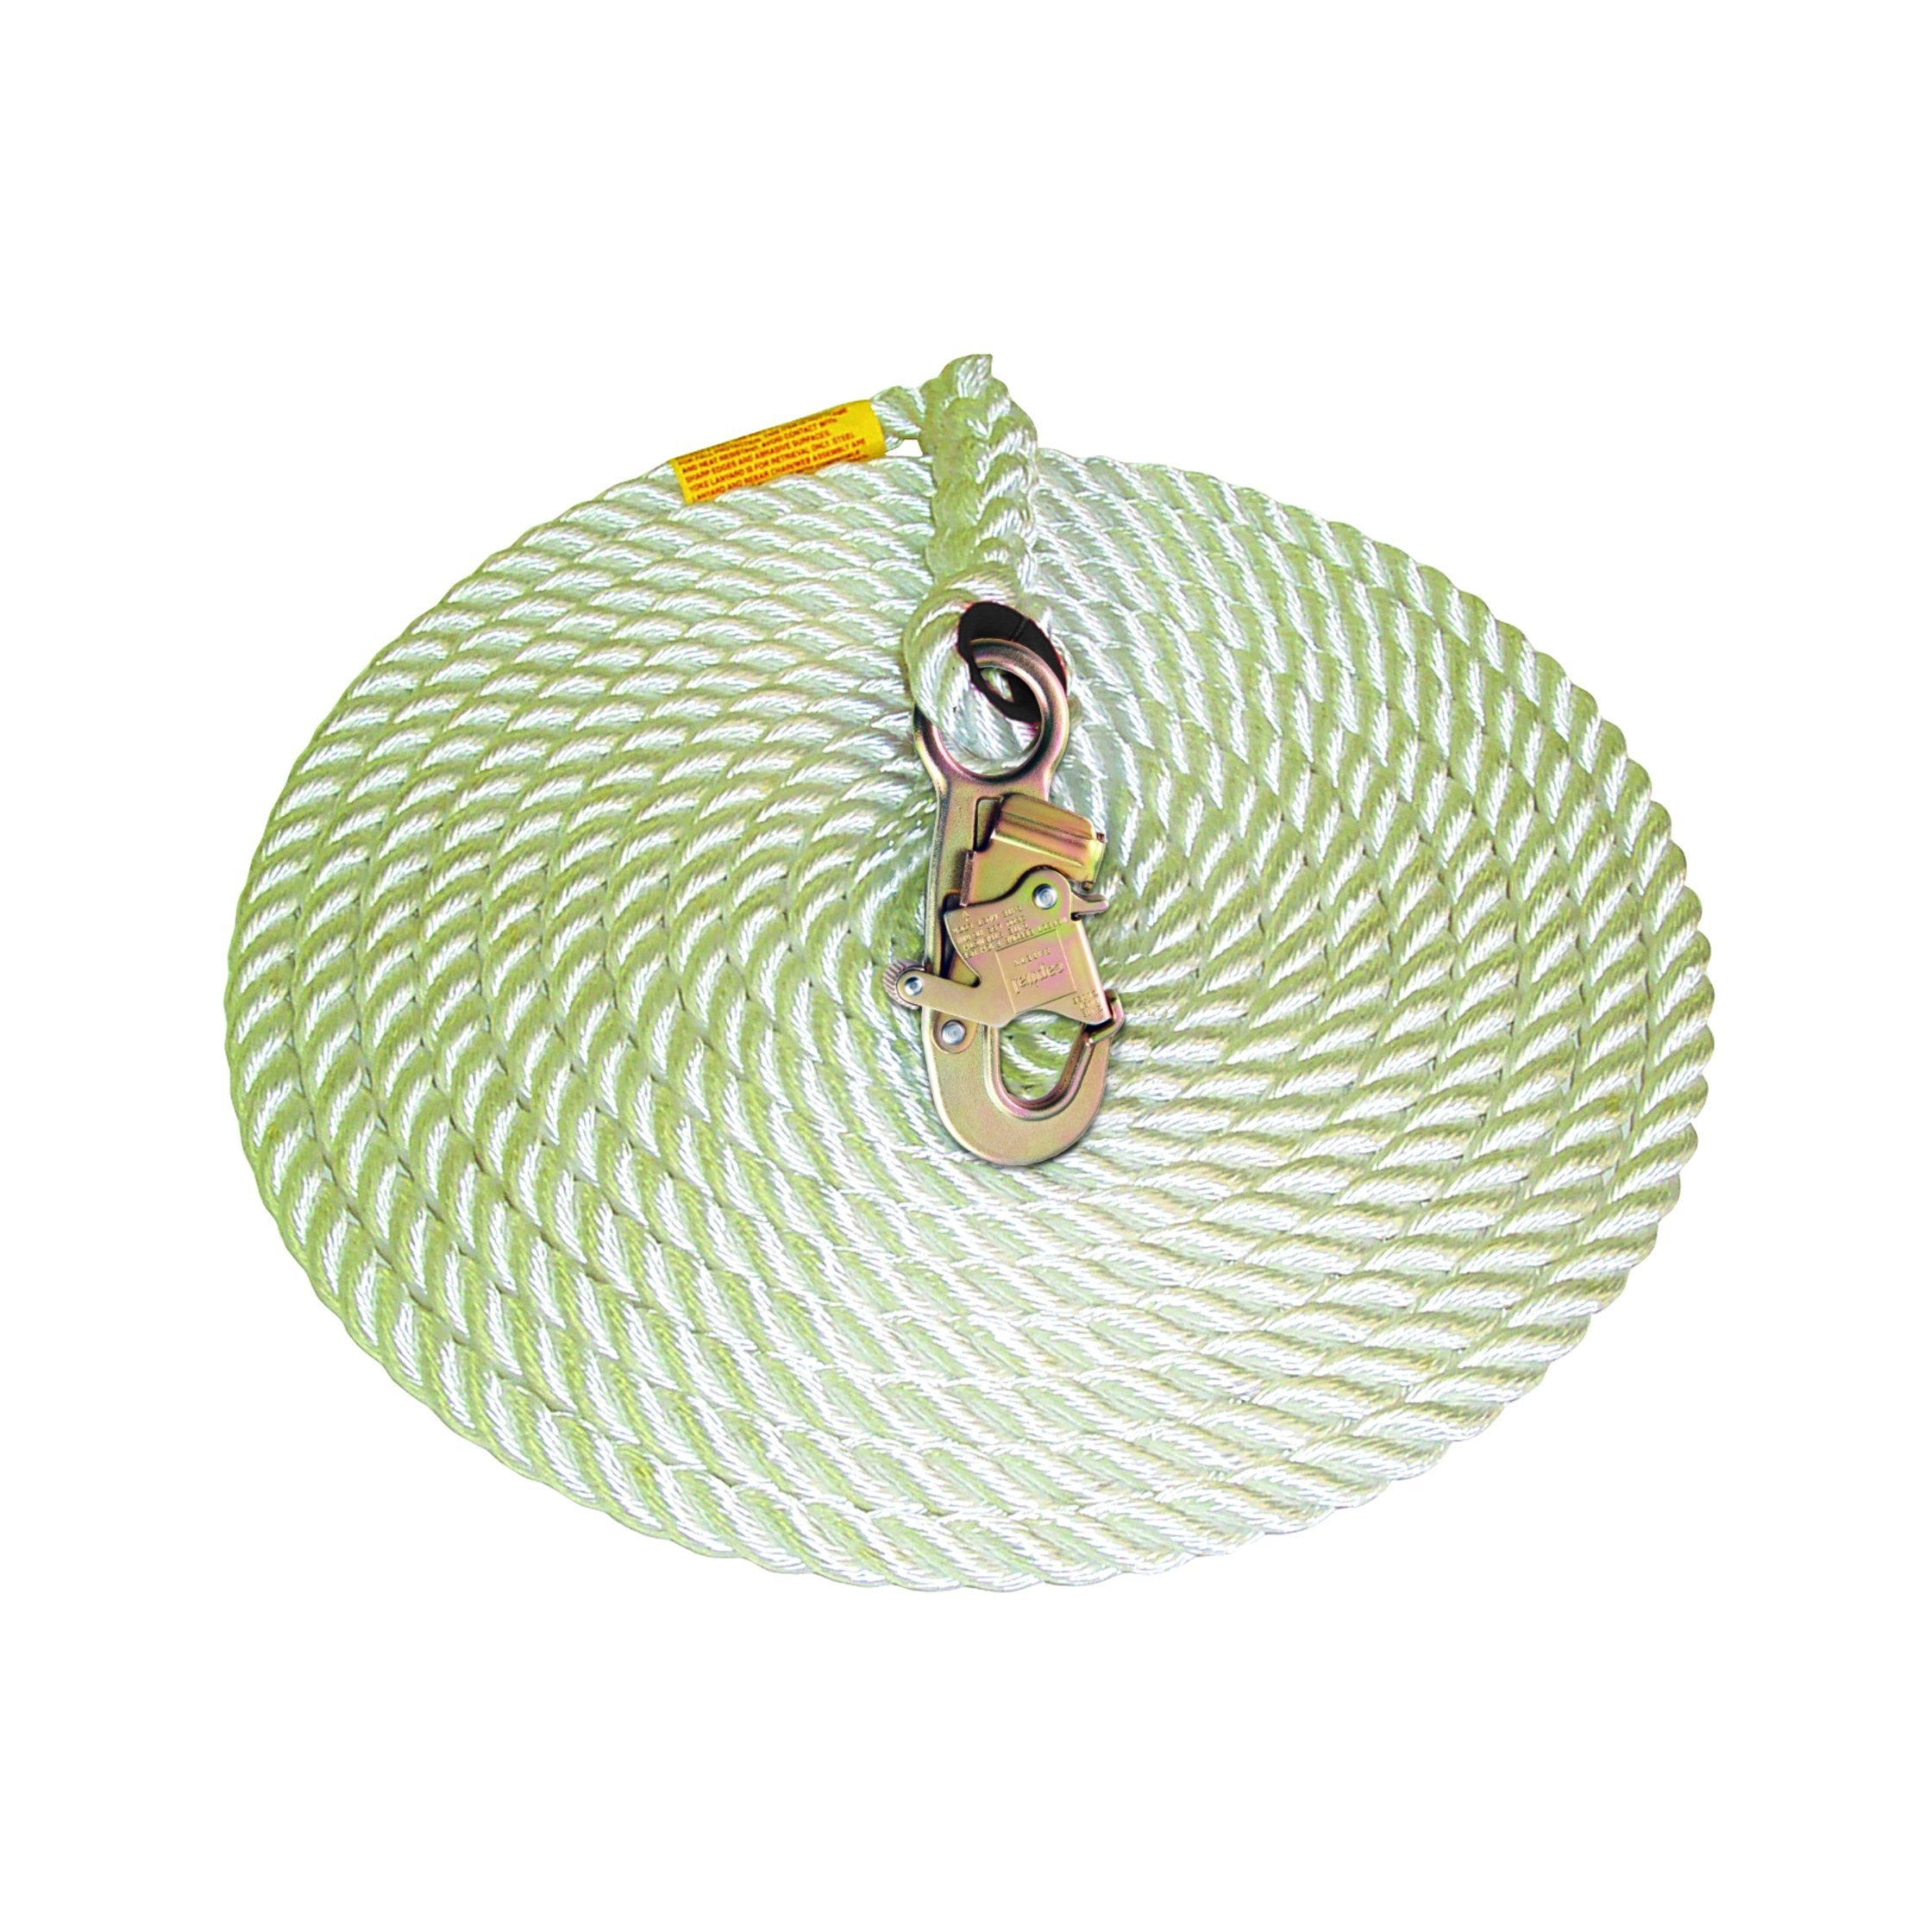 3M DBI-SALA 1202794 Vertical Systems, 5/8'' Polyester Polypropylene, 50' Rope Lifeline, with Snaphook, White with Orange Tracer by 3M Personal Protective Equipment